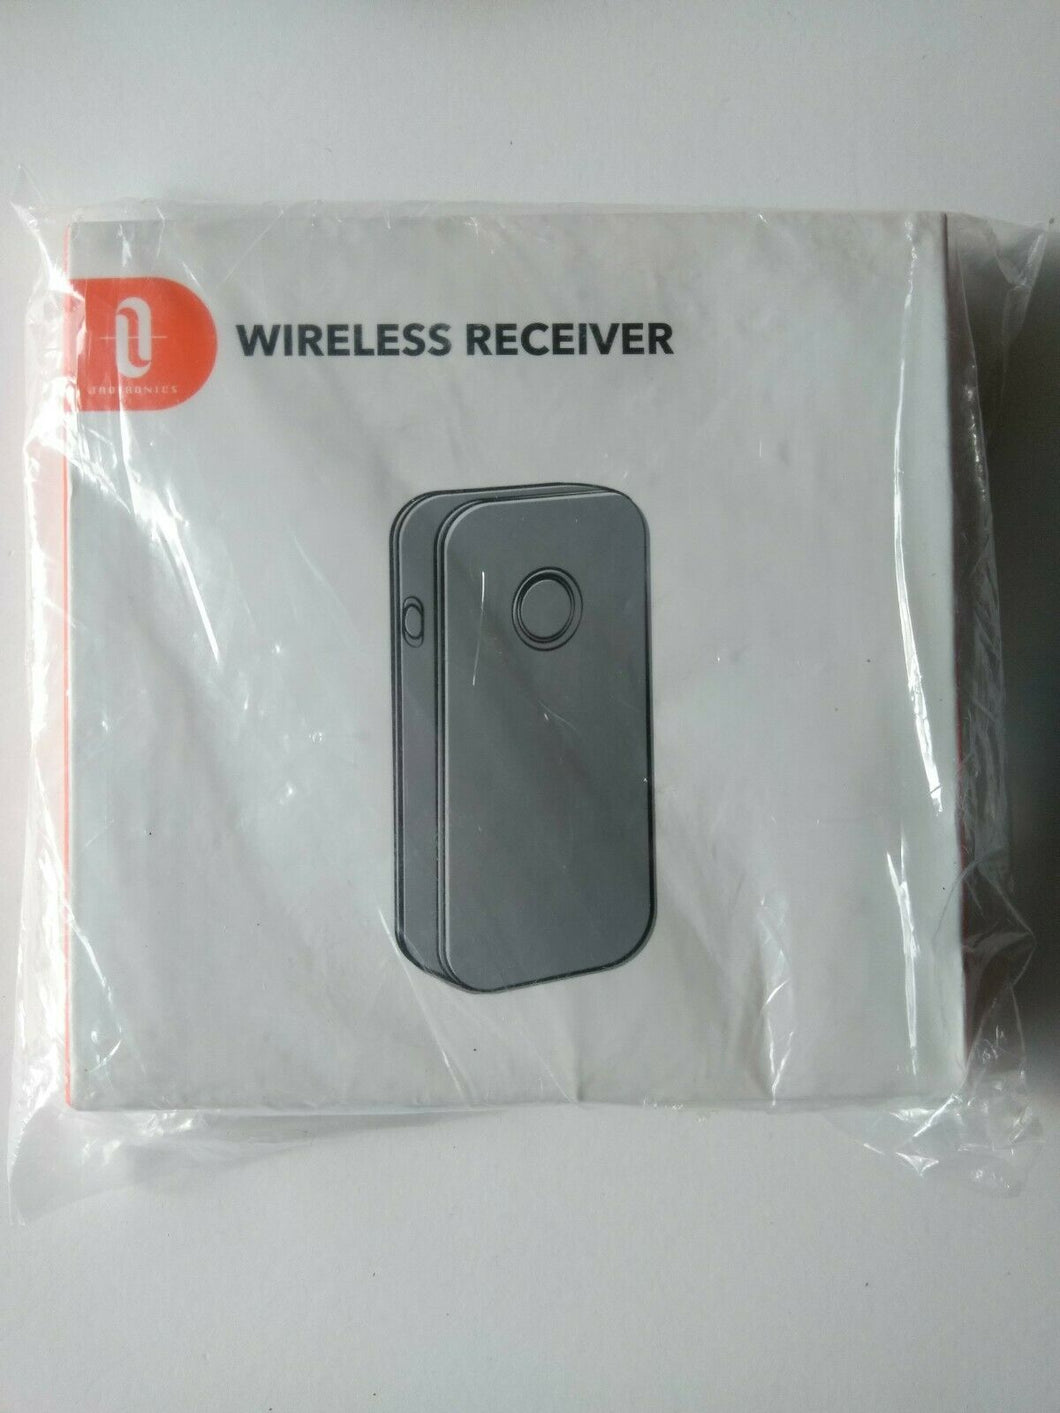 Taotronics Wireless Receiver